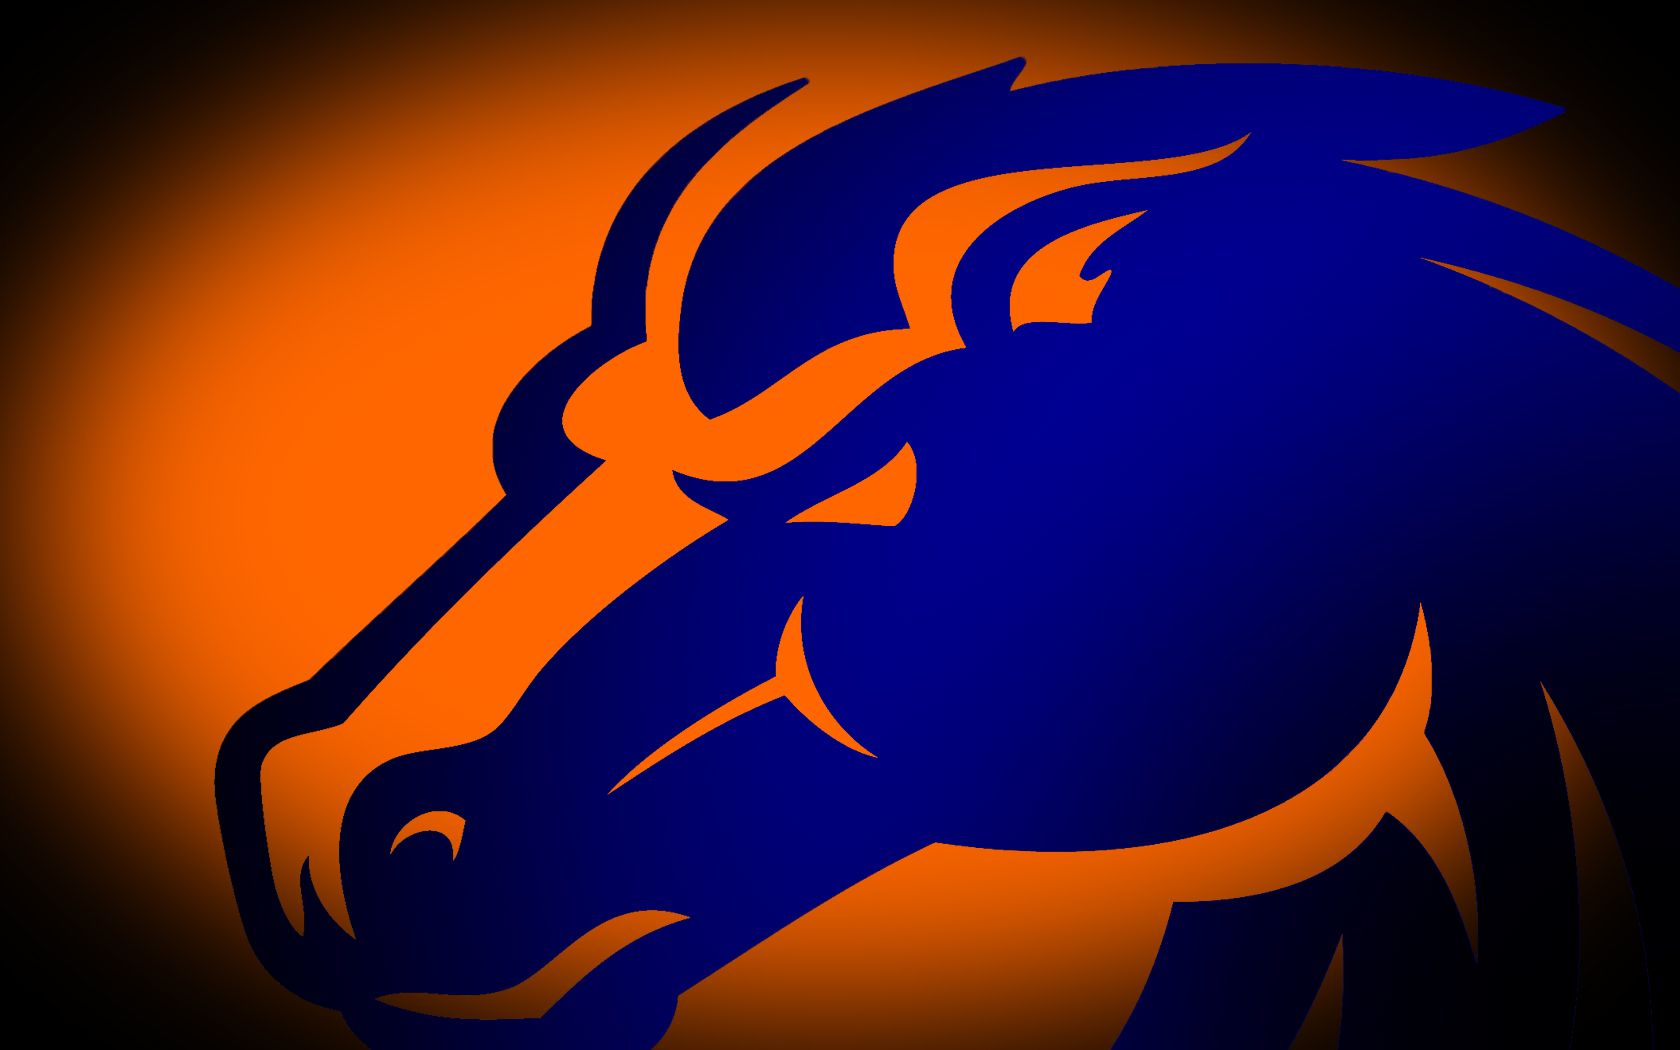 Boise State Wallpapers Free Boise State Football Wallpaper Collection Sports Geekery Boise State Football Boise State University Boise State